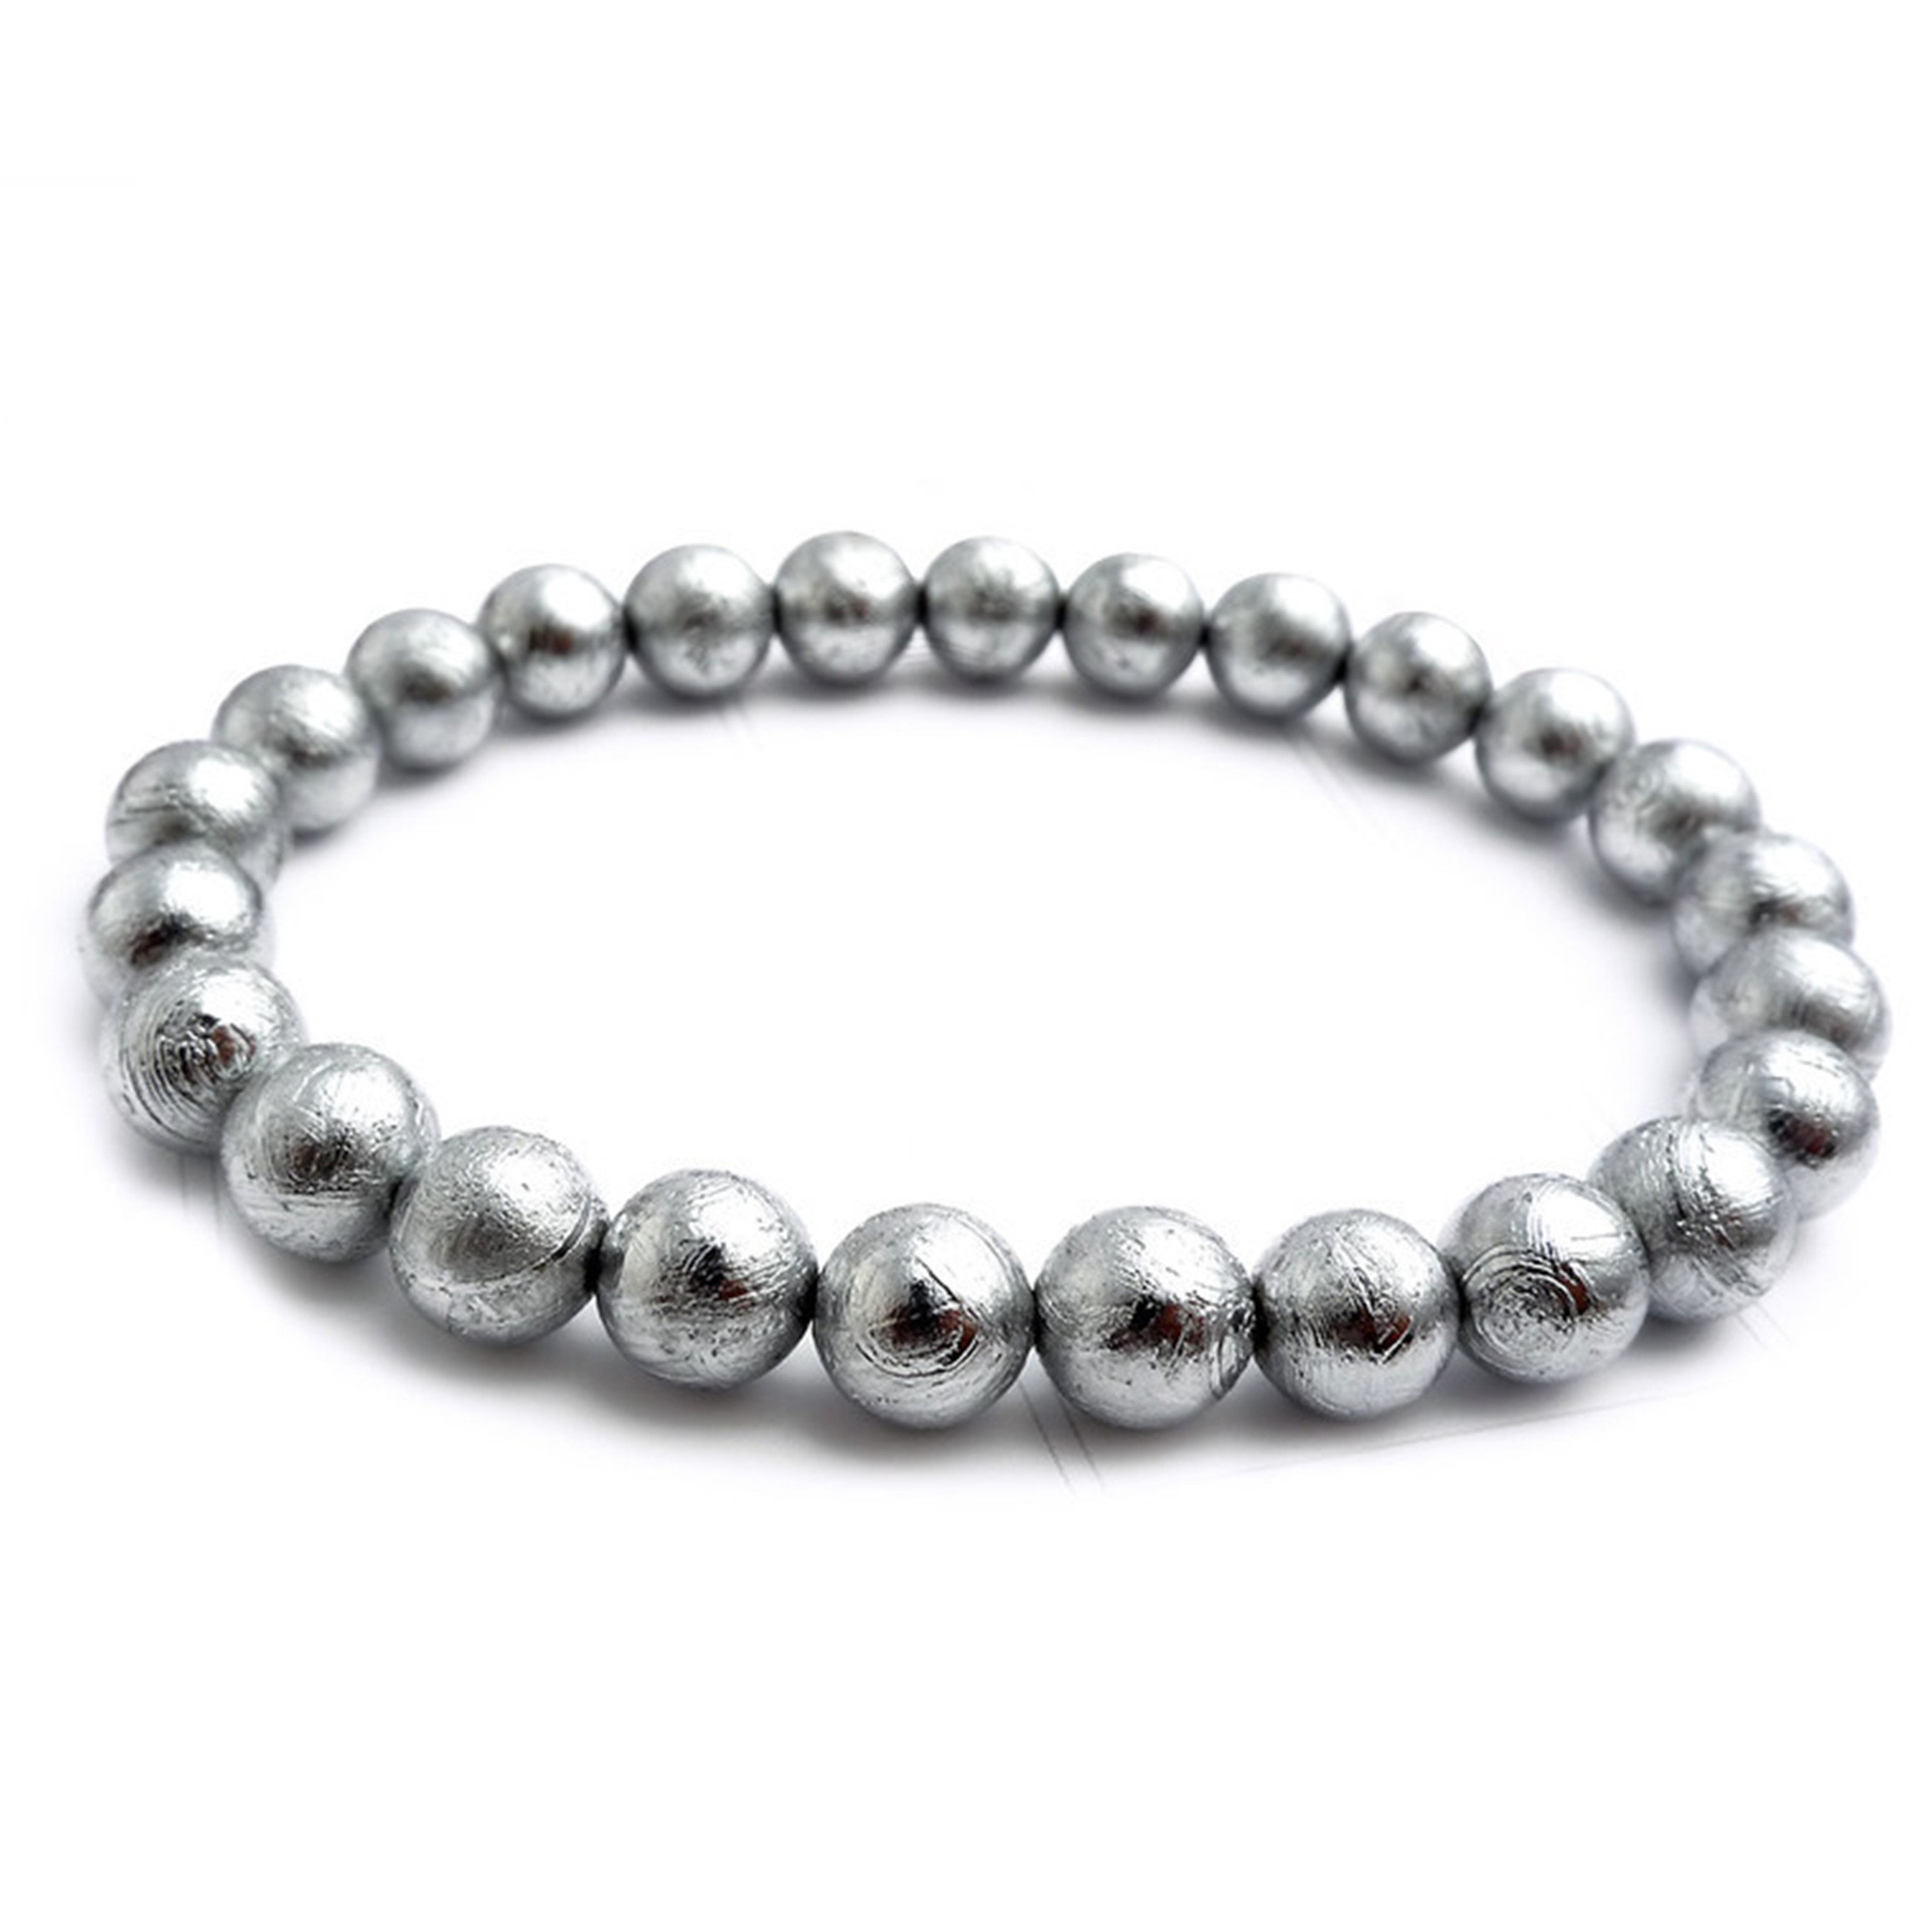 Natural Gibeon Iron Meteorite Silver Plated Round Bead Bracelet 6mm